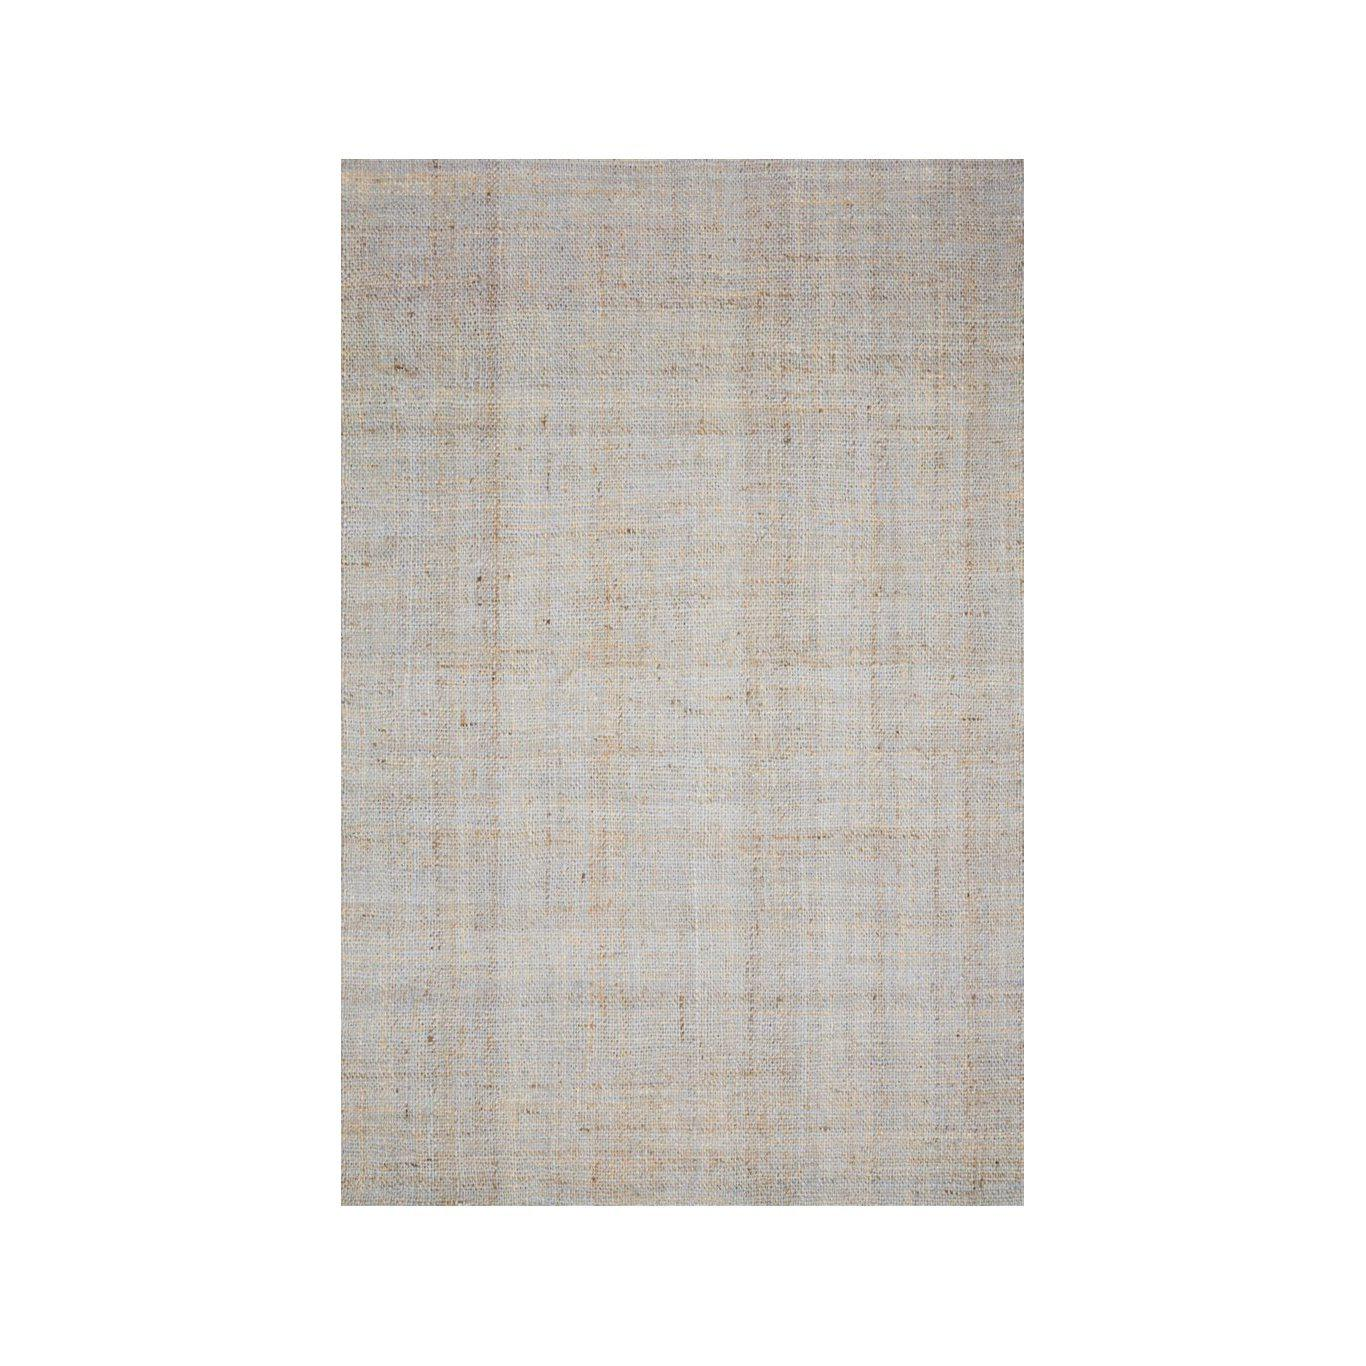 Joanna Gaines Crew Rug Collection - CRE-01 Lt. Blue-Loloi Rugs-Blue Hand Home